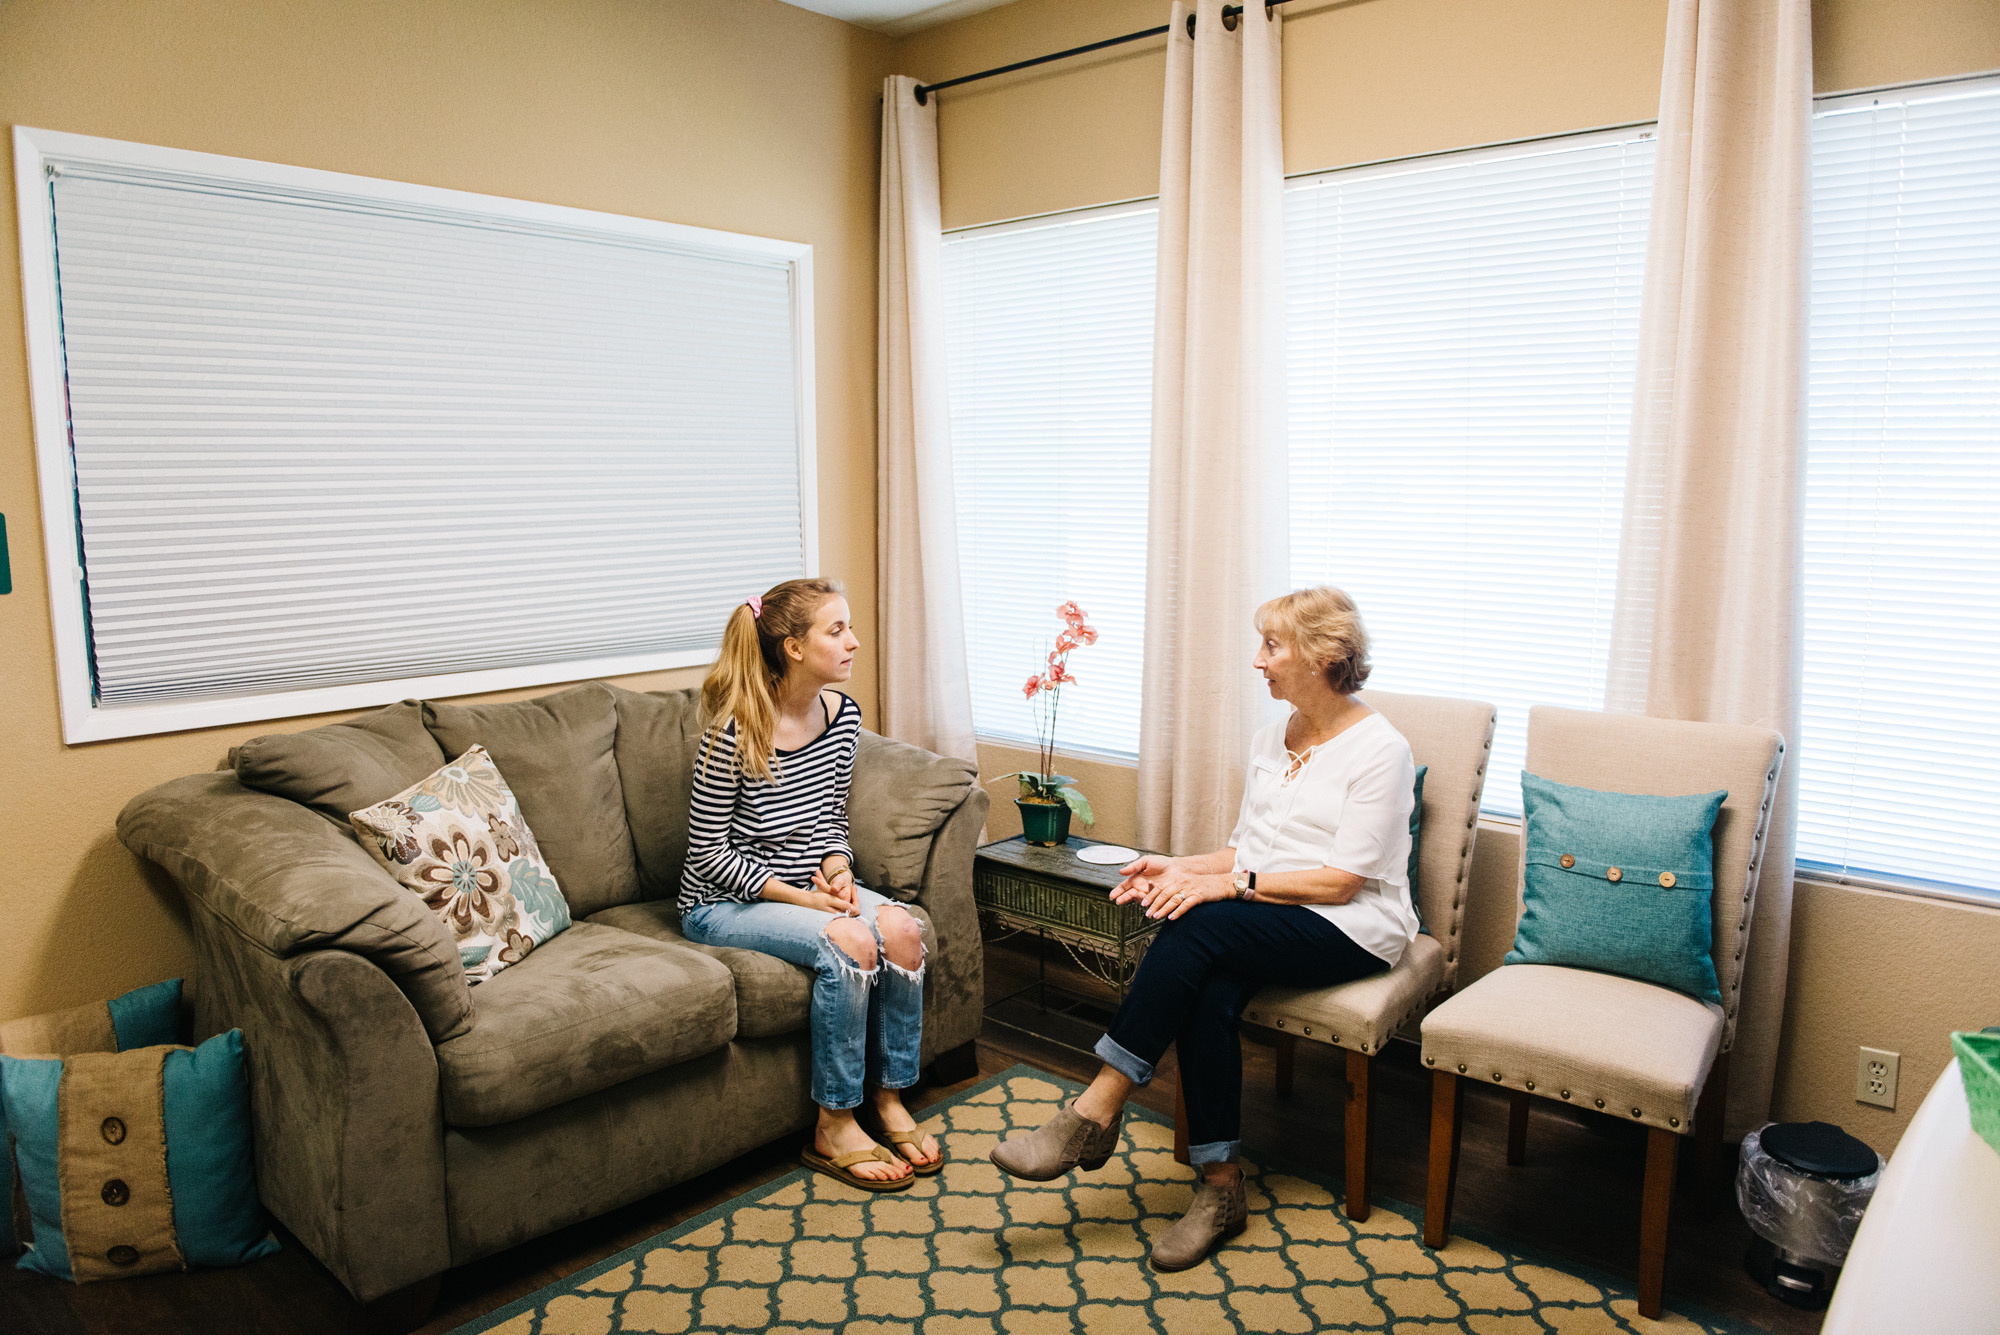 Pregnancy Options Consultation - Your period may be late, but are you sure you are really pregnant? The only time you need to make a decision about pregnancy is after confirming you have a viable pregnancy. Once a doctor has confirmed pregnancy, then it's time to consider all Your Choices.We believe you deserve to understand all of your options before making a pregnancy choice, but how well do you understand the options available to you? We provide a safe place and the compassionate support of a nurse or Patient Advocate who will help you explore all the possibilities for your unique situation. Make an appointment for a confidential consultation today. We will not judge you. We will not pressure you. We will not talk to anyone about your situation unless you ask us to. That is Our Promise to you.